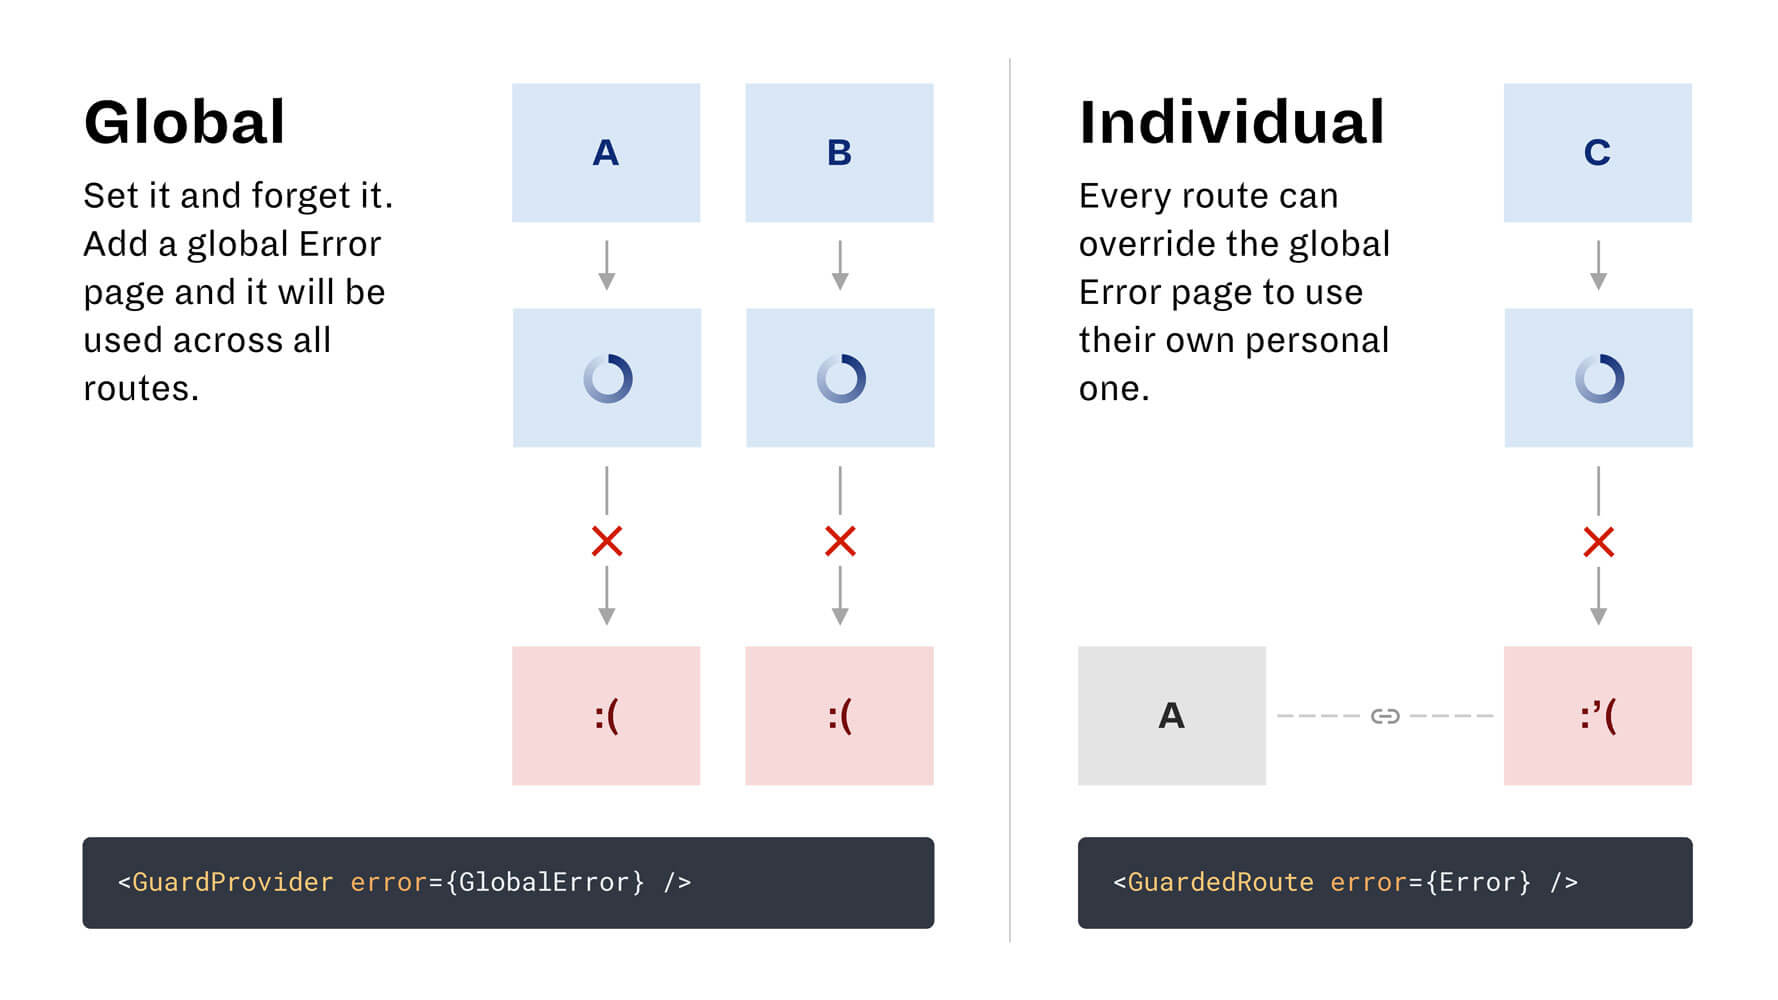 A slide illustrating the difference between global and individual error pages.